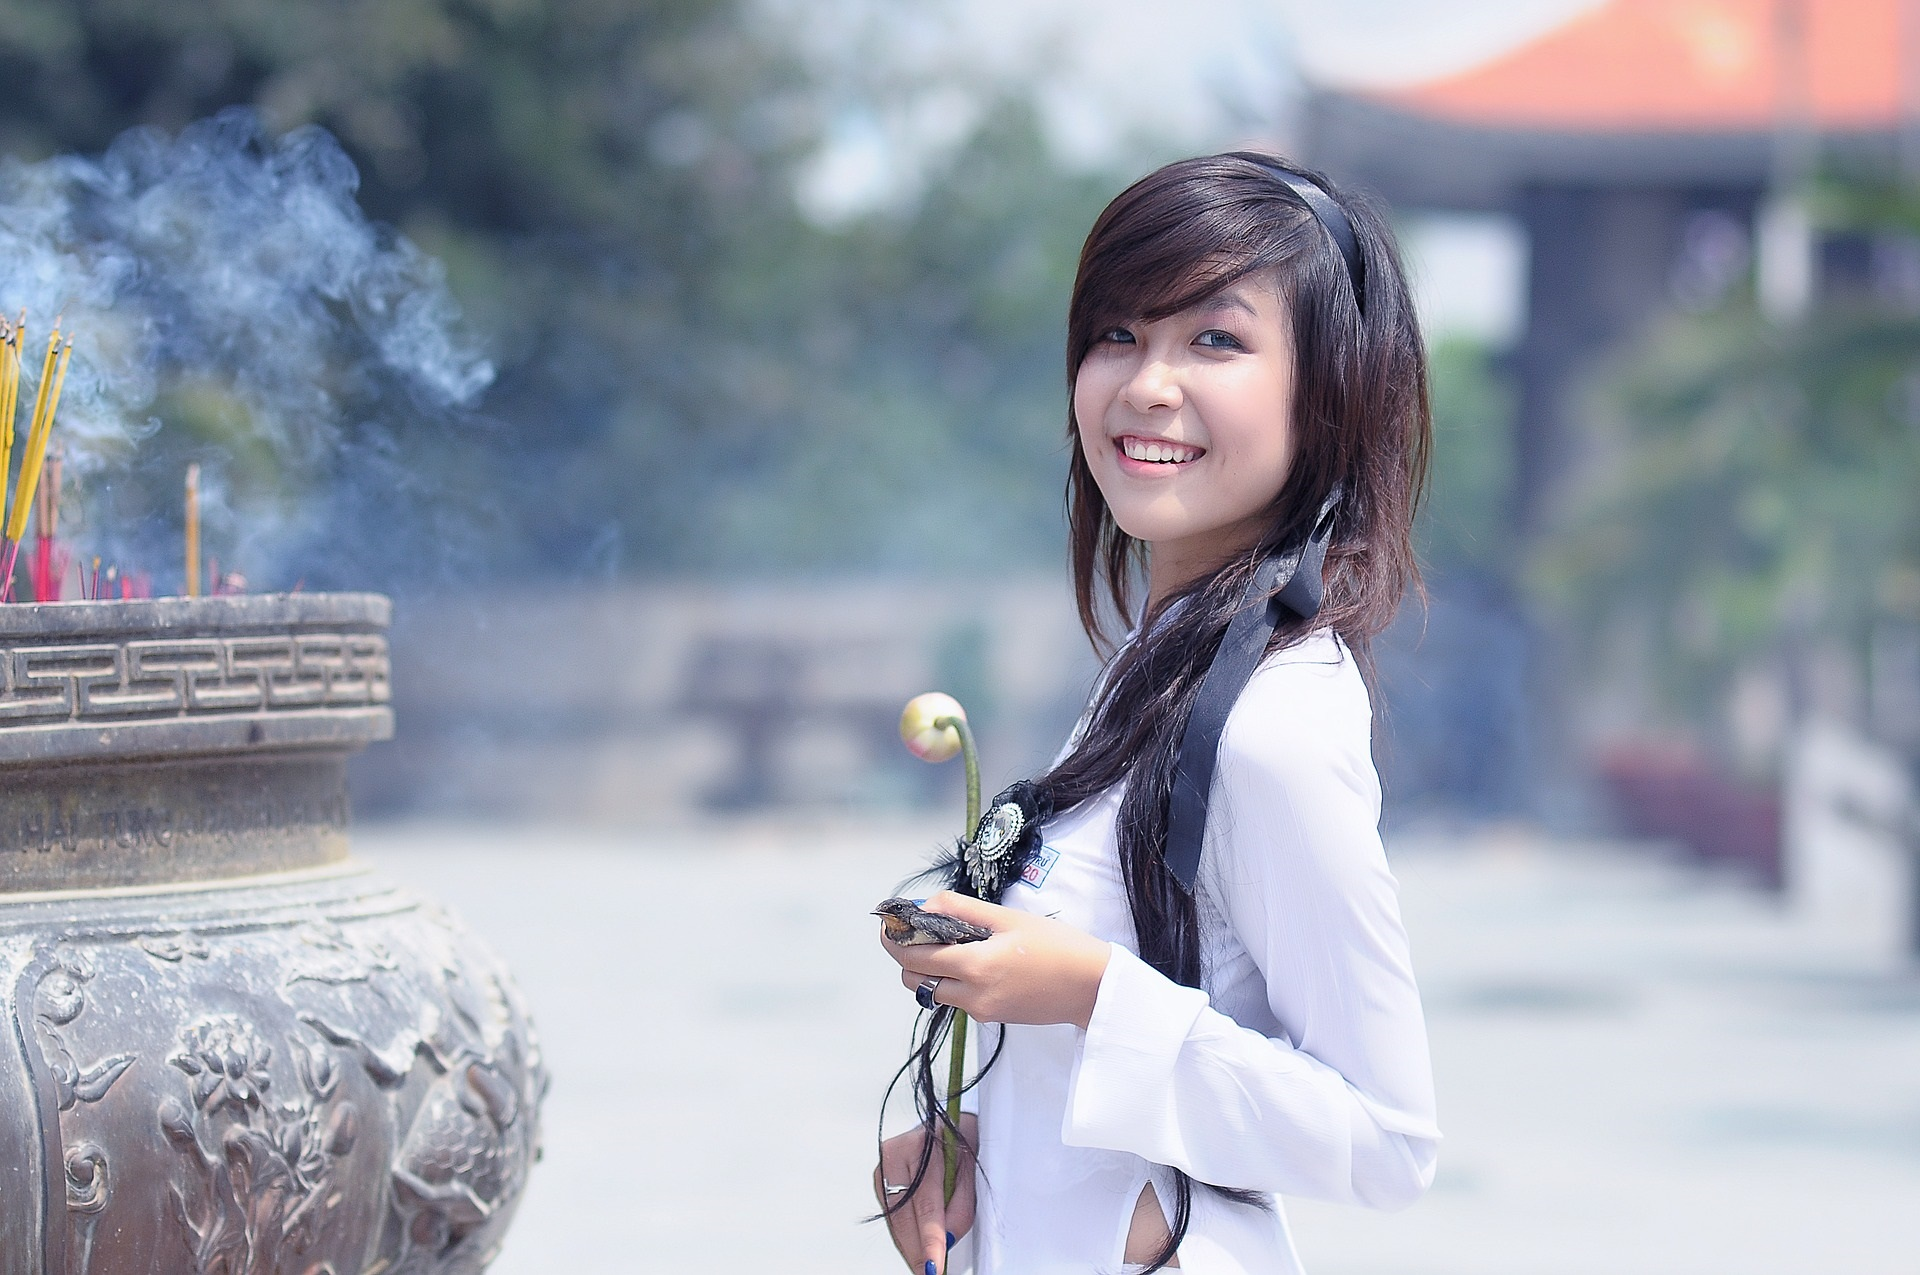 Asian American woman holding a flower